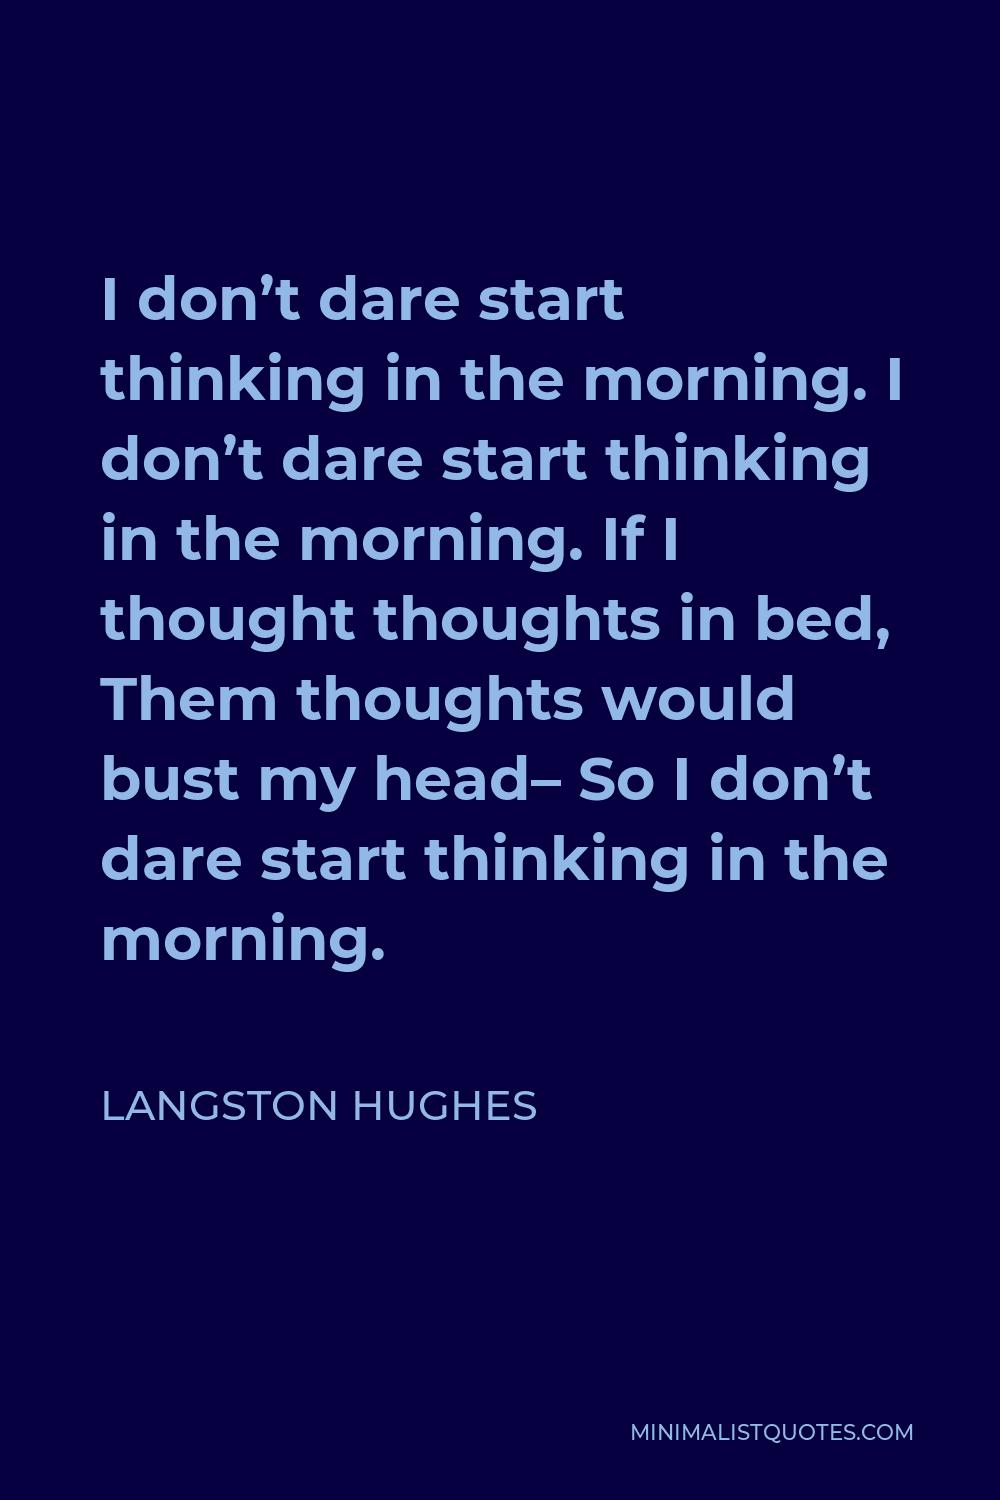 Langston Hughes Quote - I don't dare start thinking in the morning. I don't dare start thinking in the morning. If I thought thoughts in bed, Them thoughts would bust my head– So I don't dare start thinking in the morning.